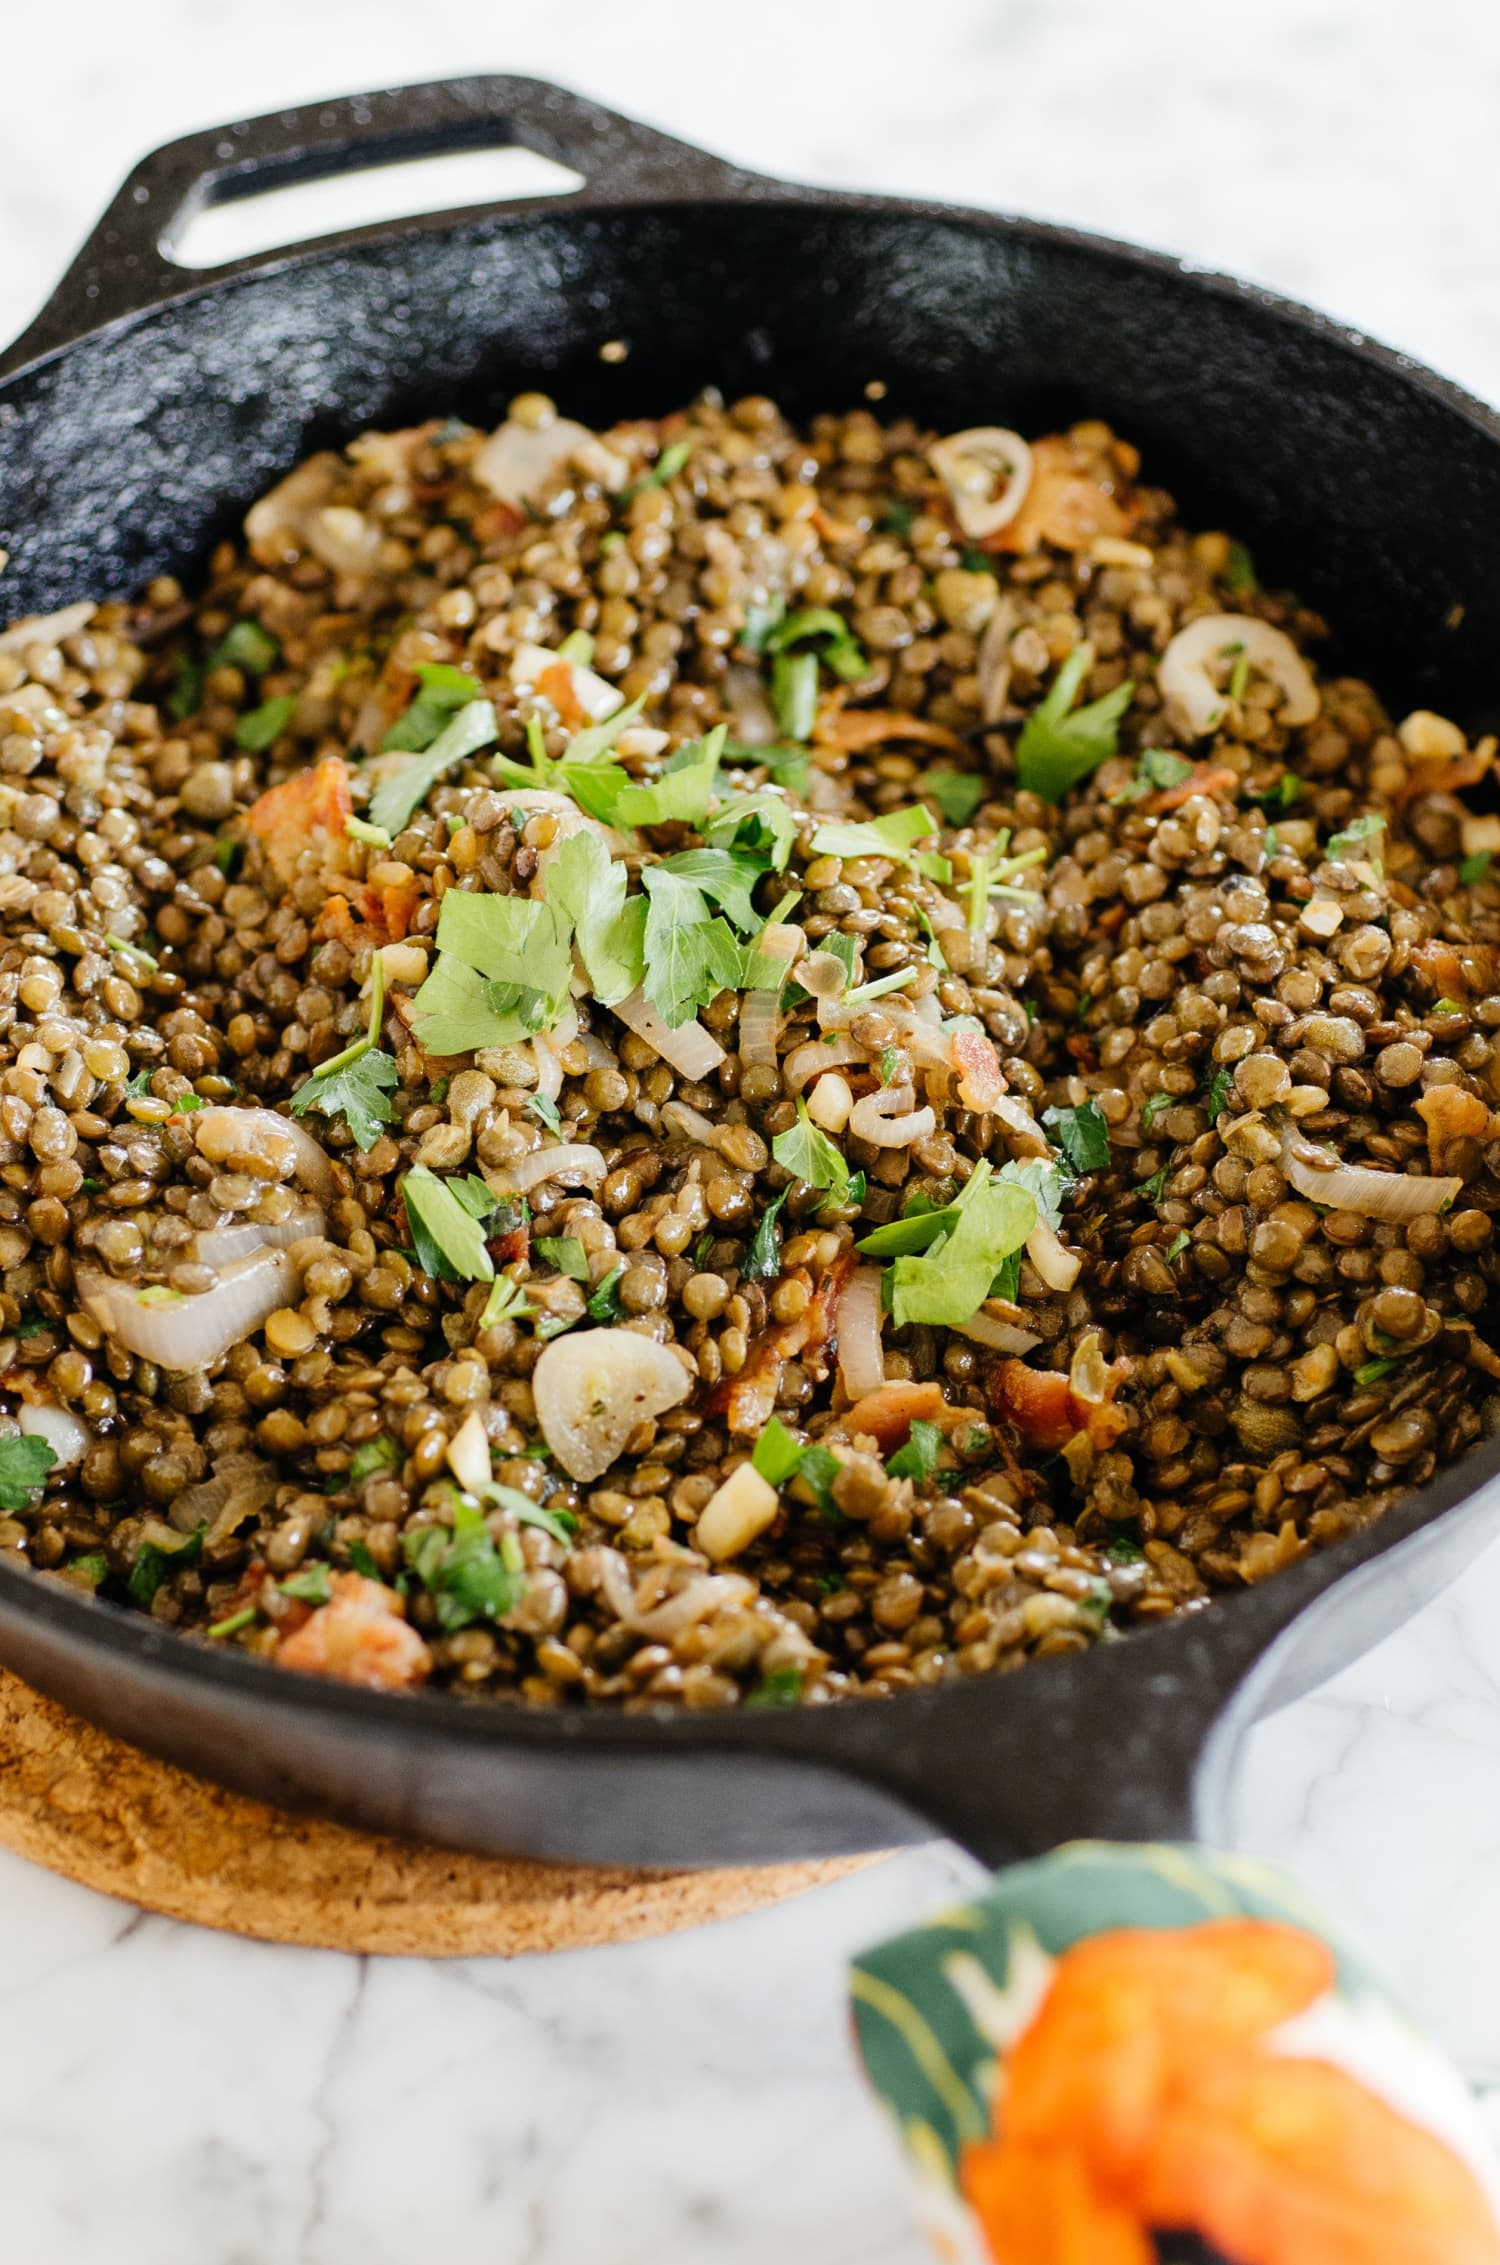 Do You Need Some Healthy Comfort Food Lentils Are